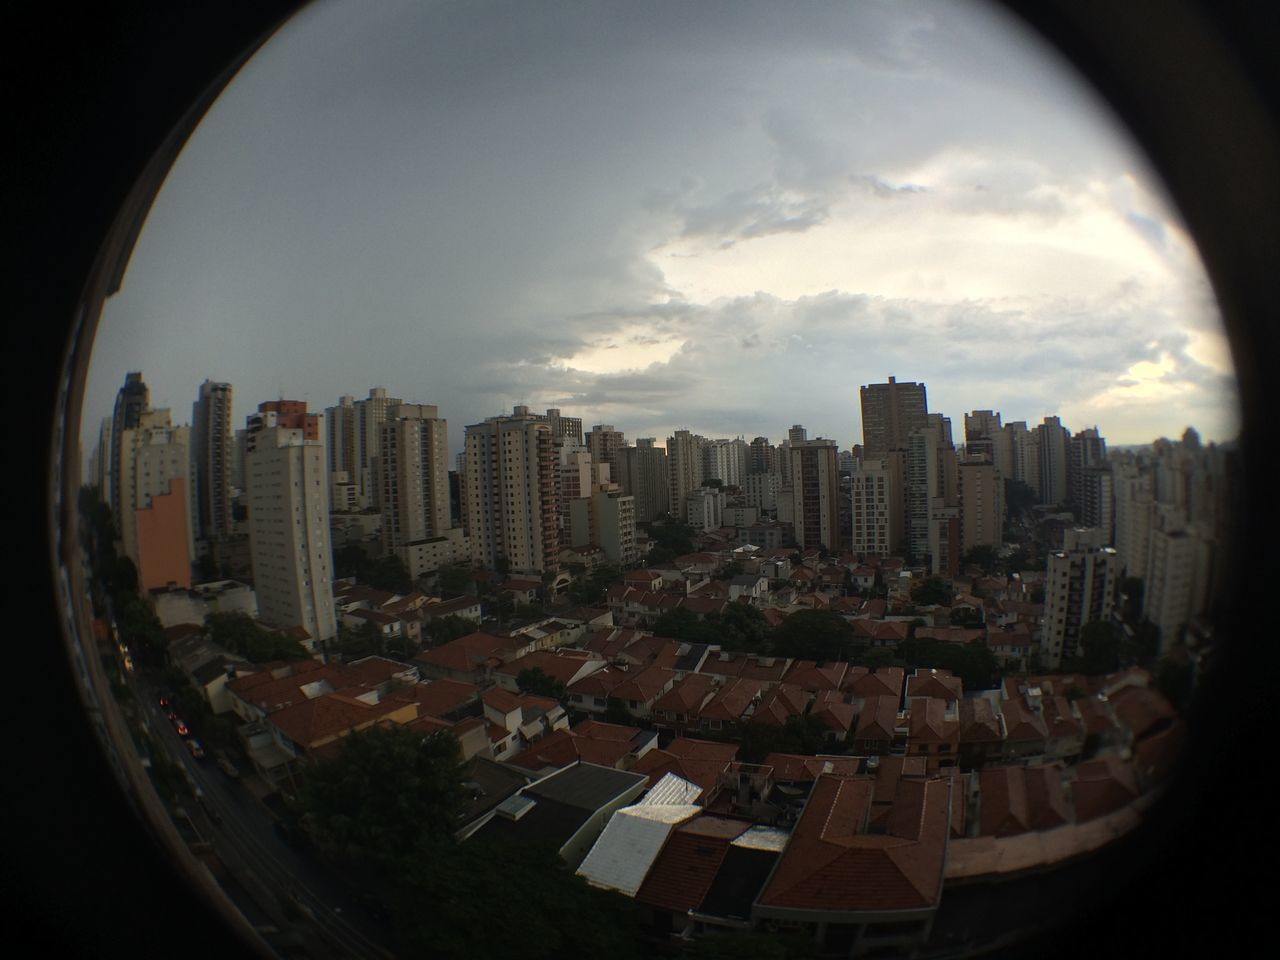 cityscape, architecture, skyscraper, city, building exterior, built structure, sky, modern, no people, fish-eye lens, day, urban skyline, indoors